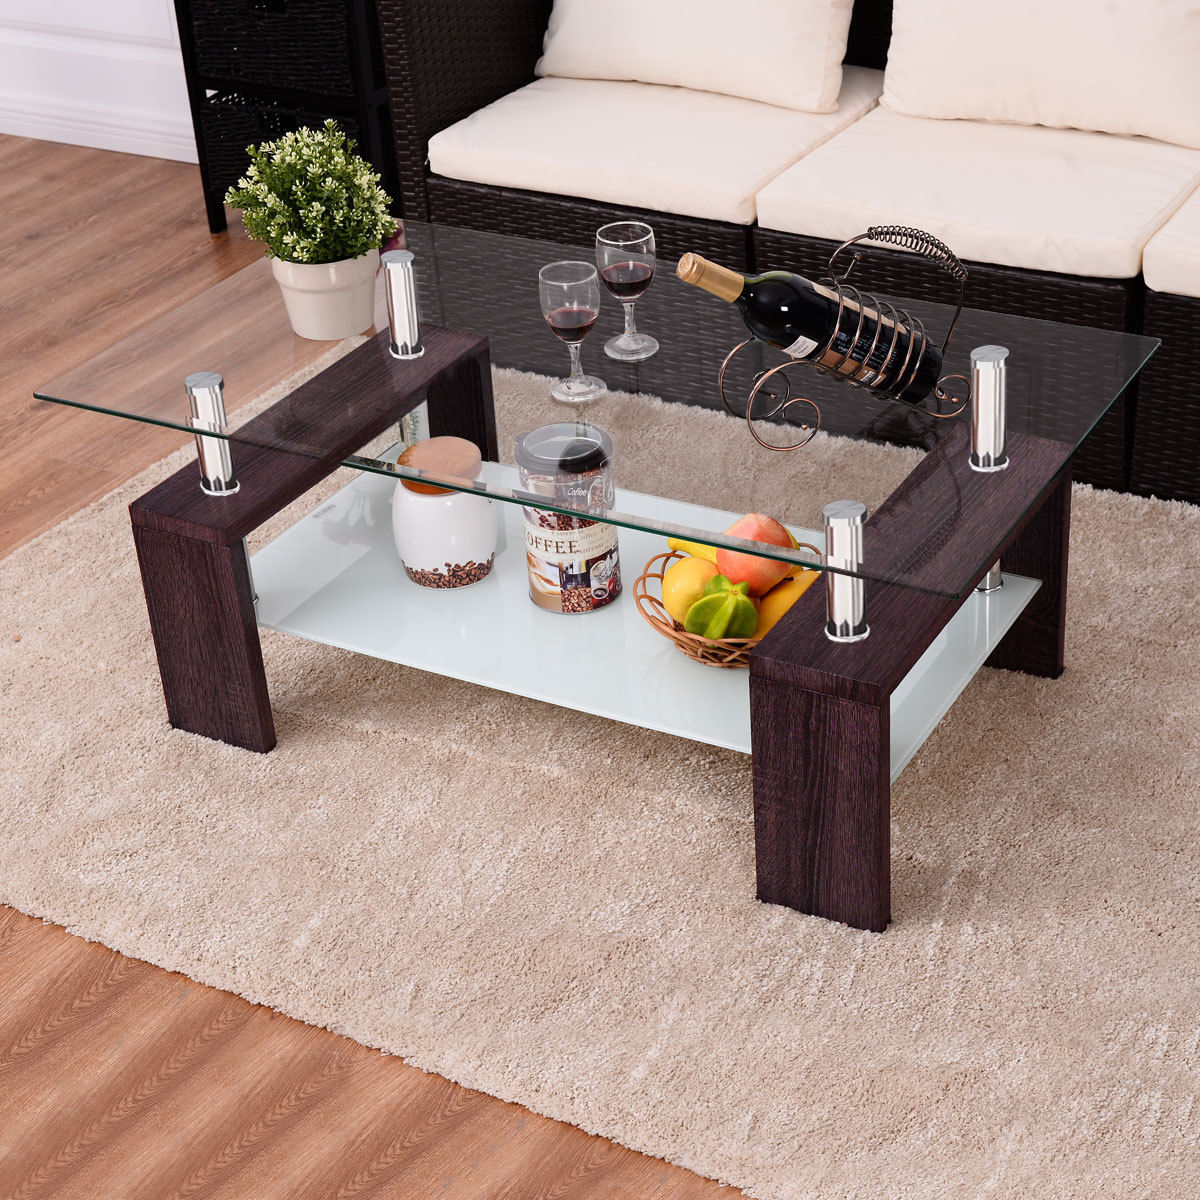 Costway Rectangular Tempered Glass Coffee Table w Shelf Wood Living Room Furniture by Costway